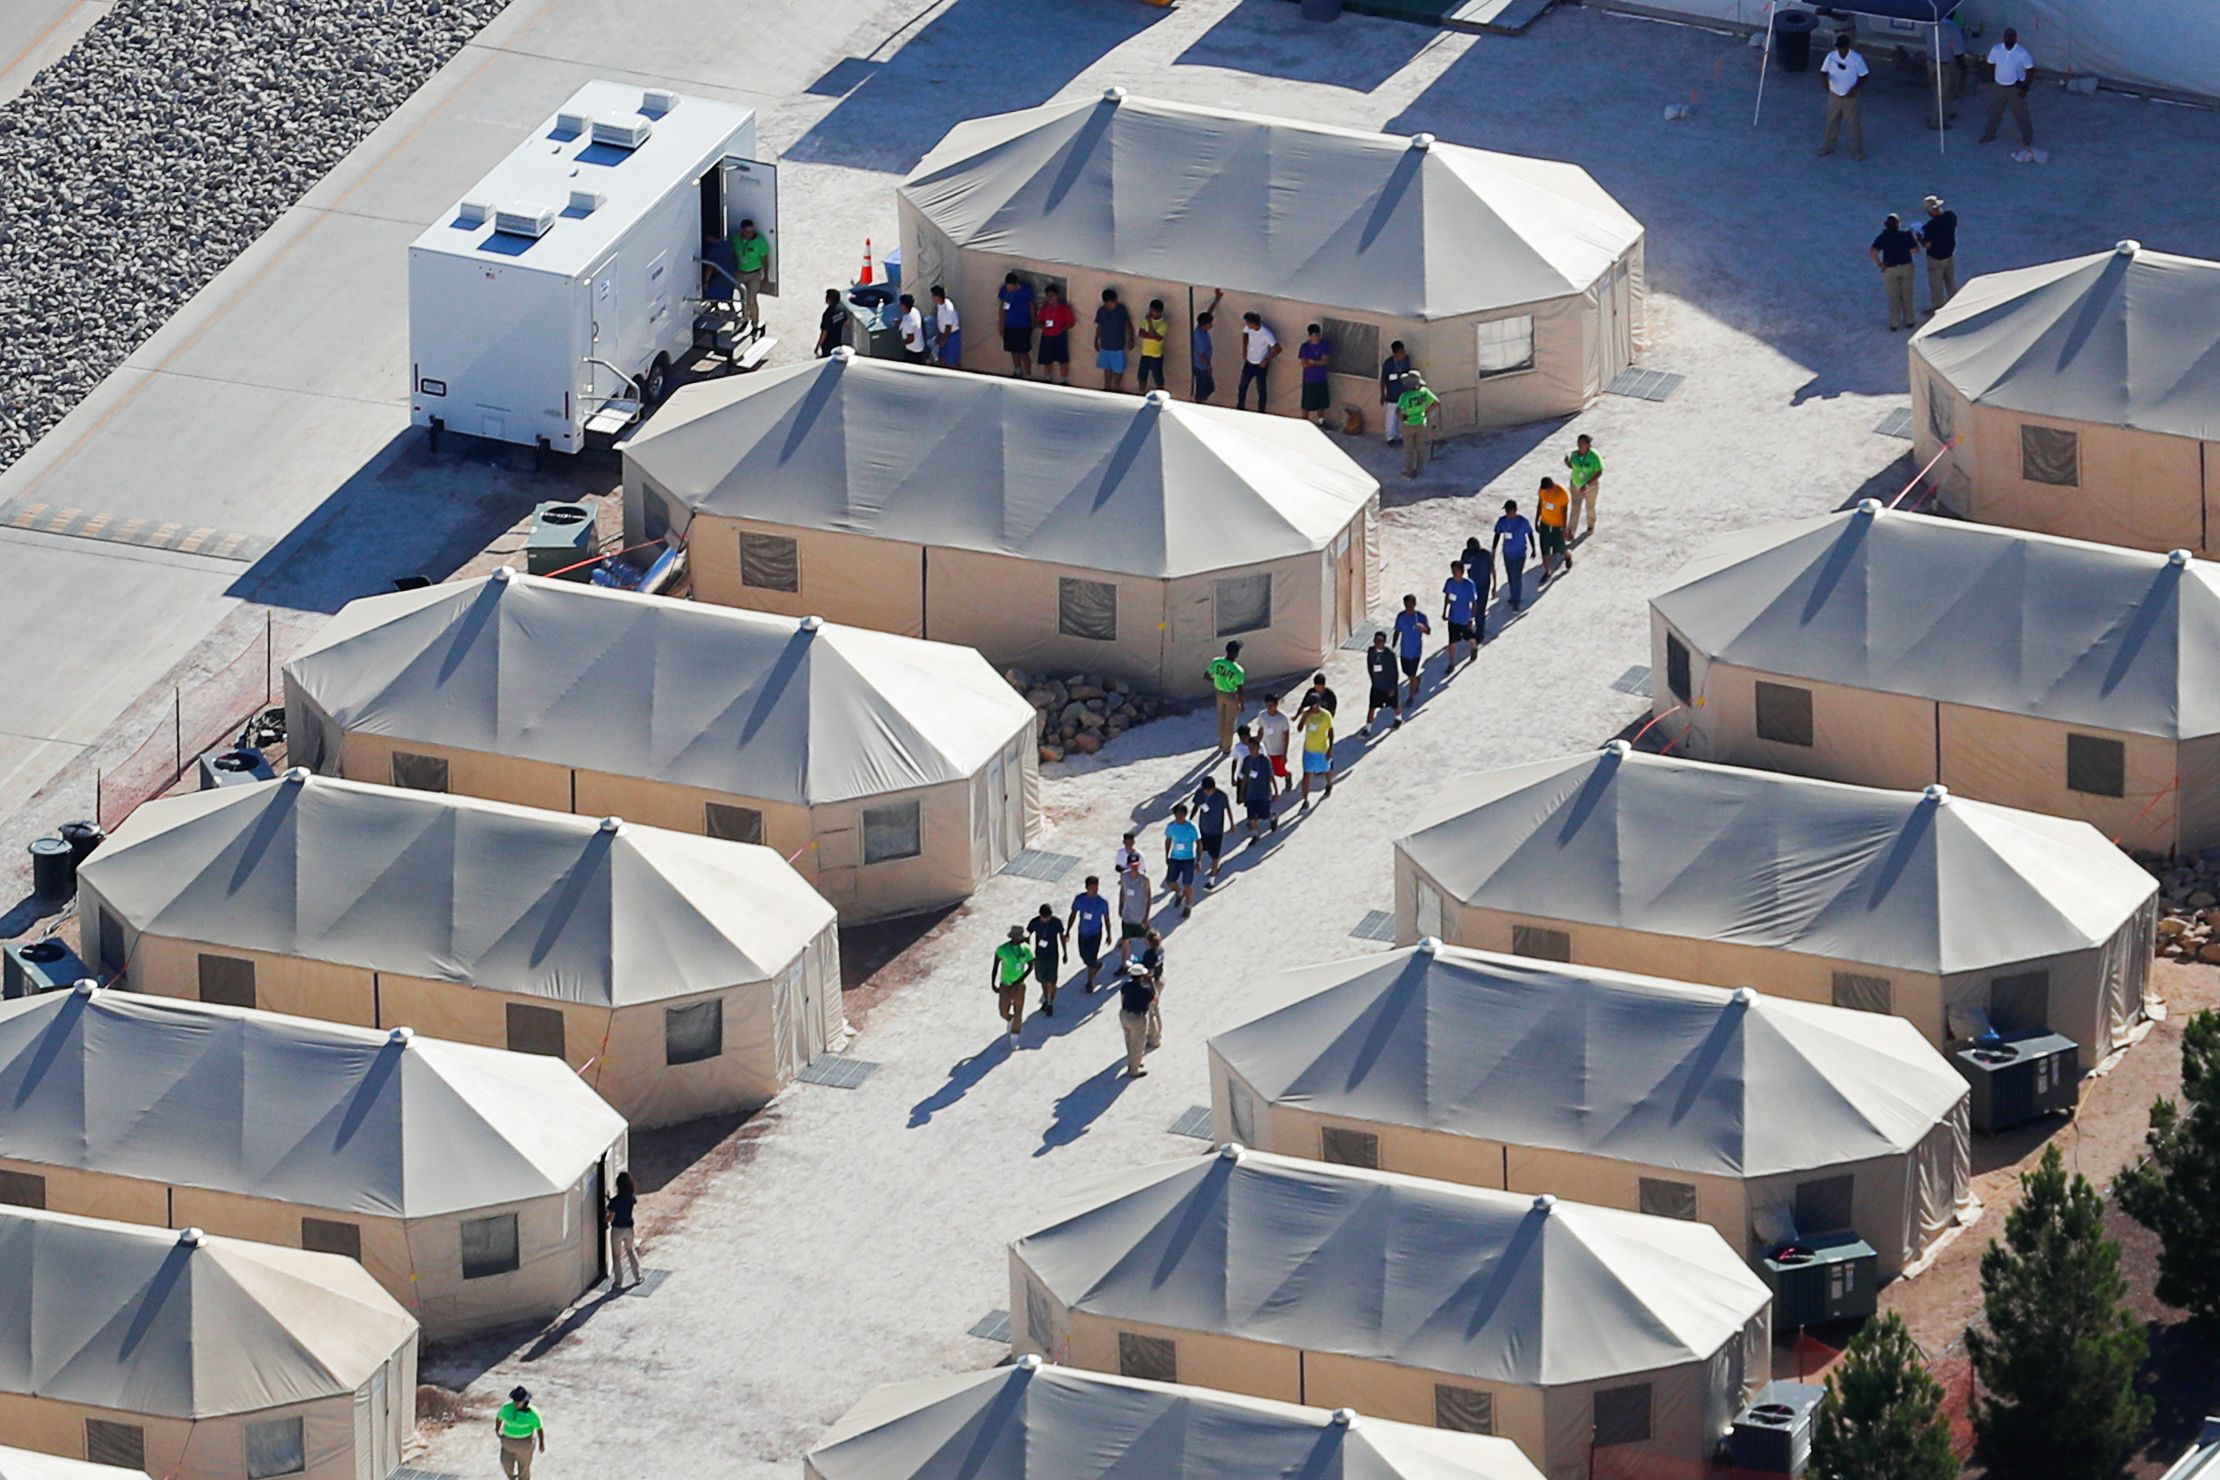 How the Stress of Family Separation May Permanently Damage Migrant Children